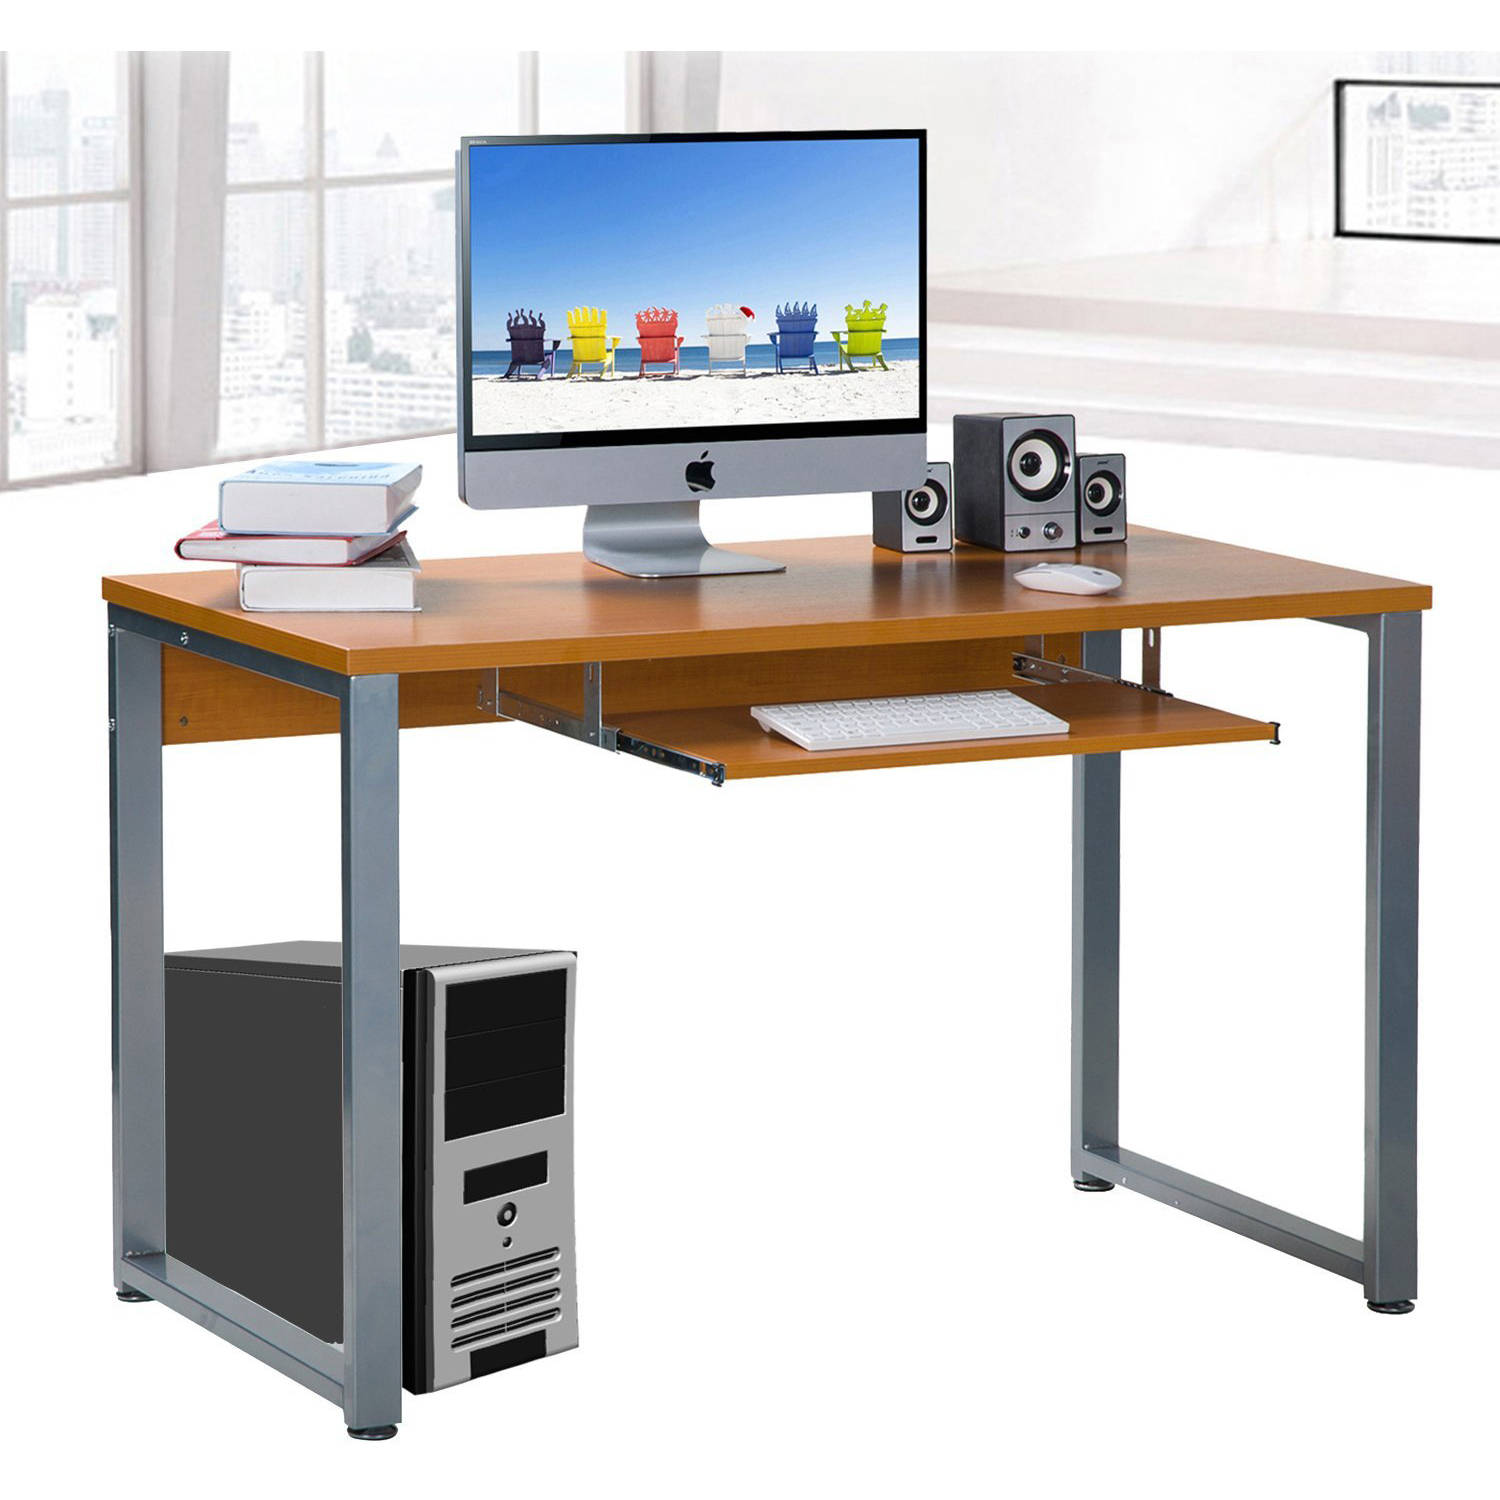 Large Rectangular Computer Desk Office Desk With Keyboard Tray, Espresso